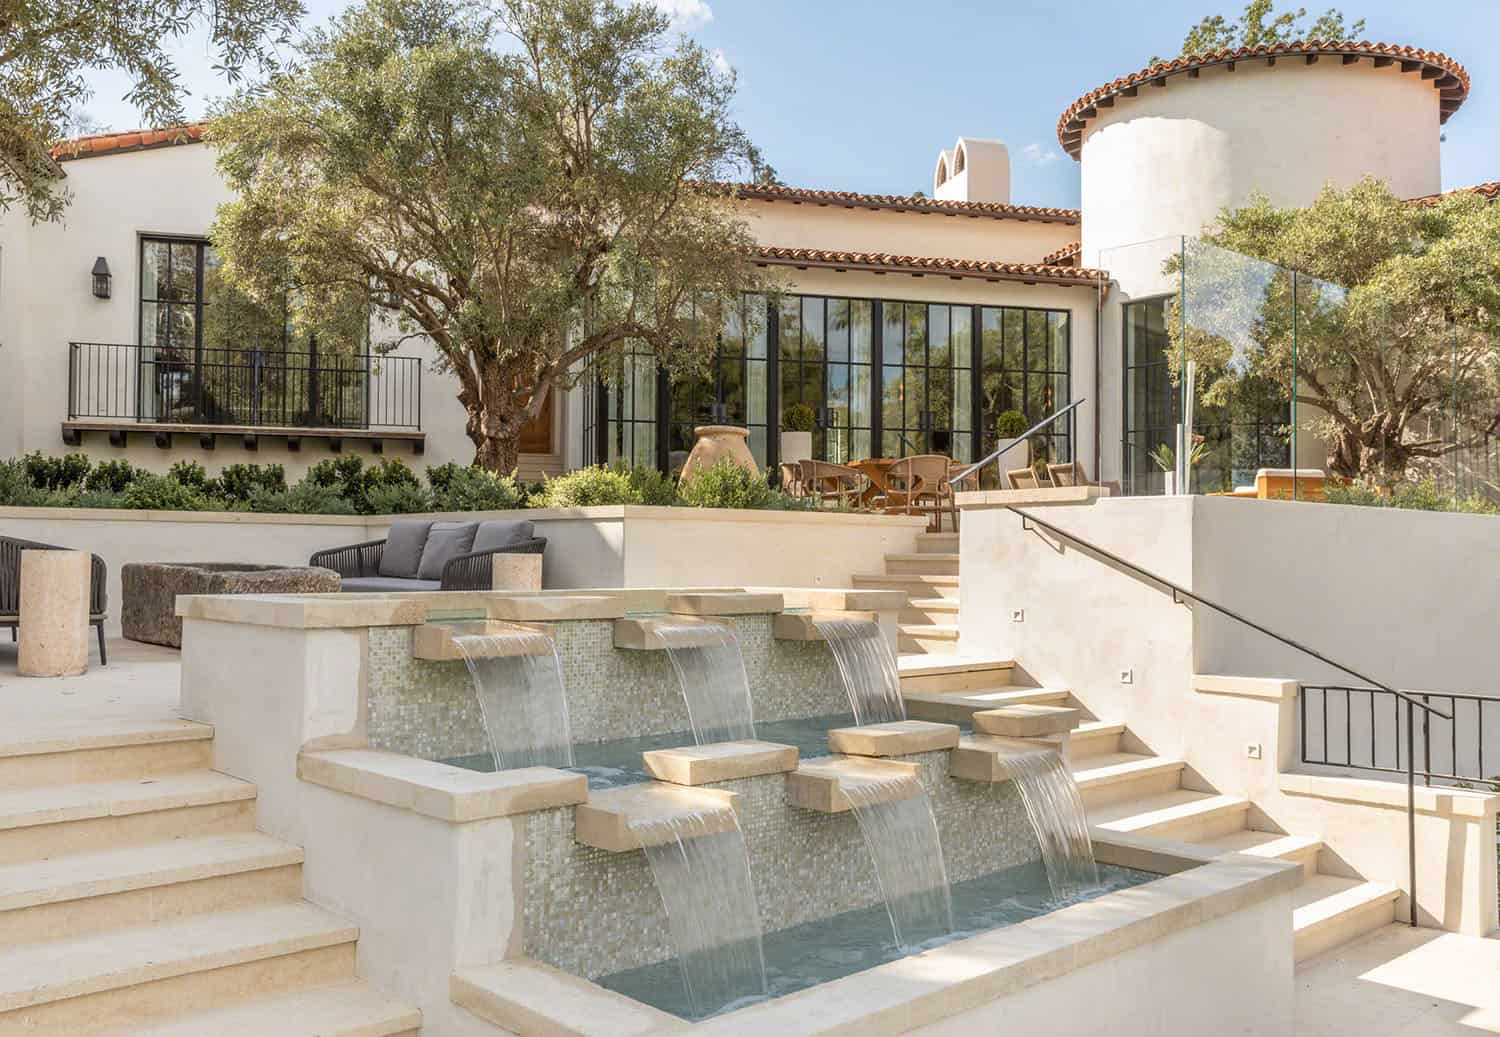 spanish-colonial-style-home-pool-water-feature